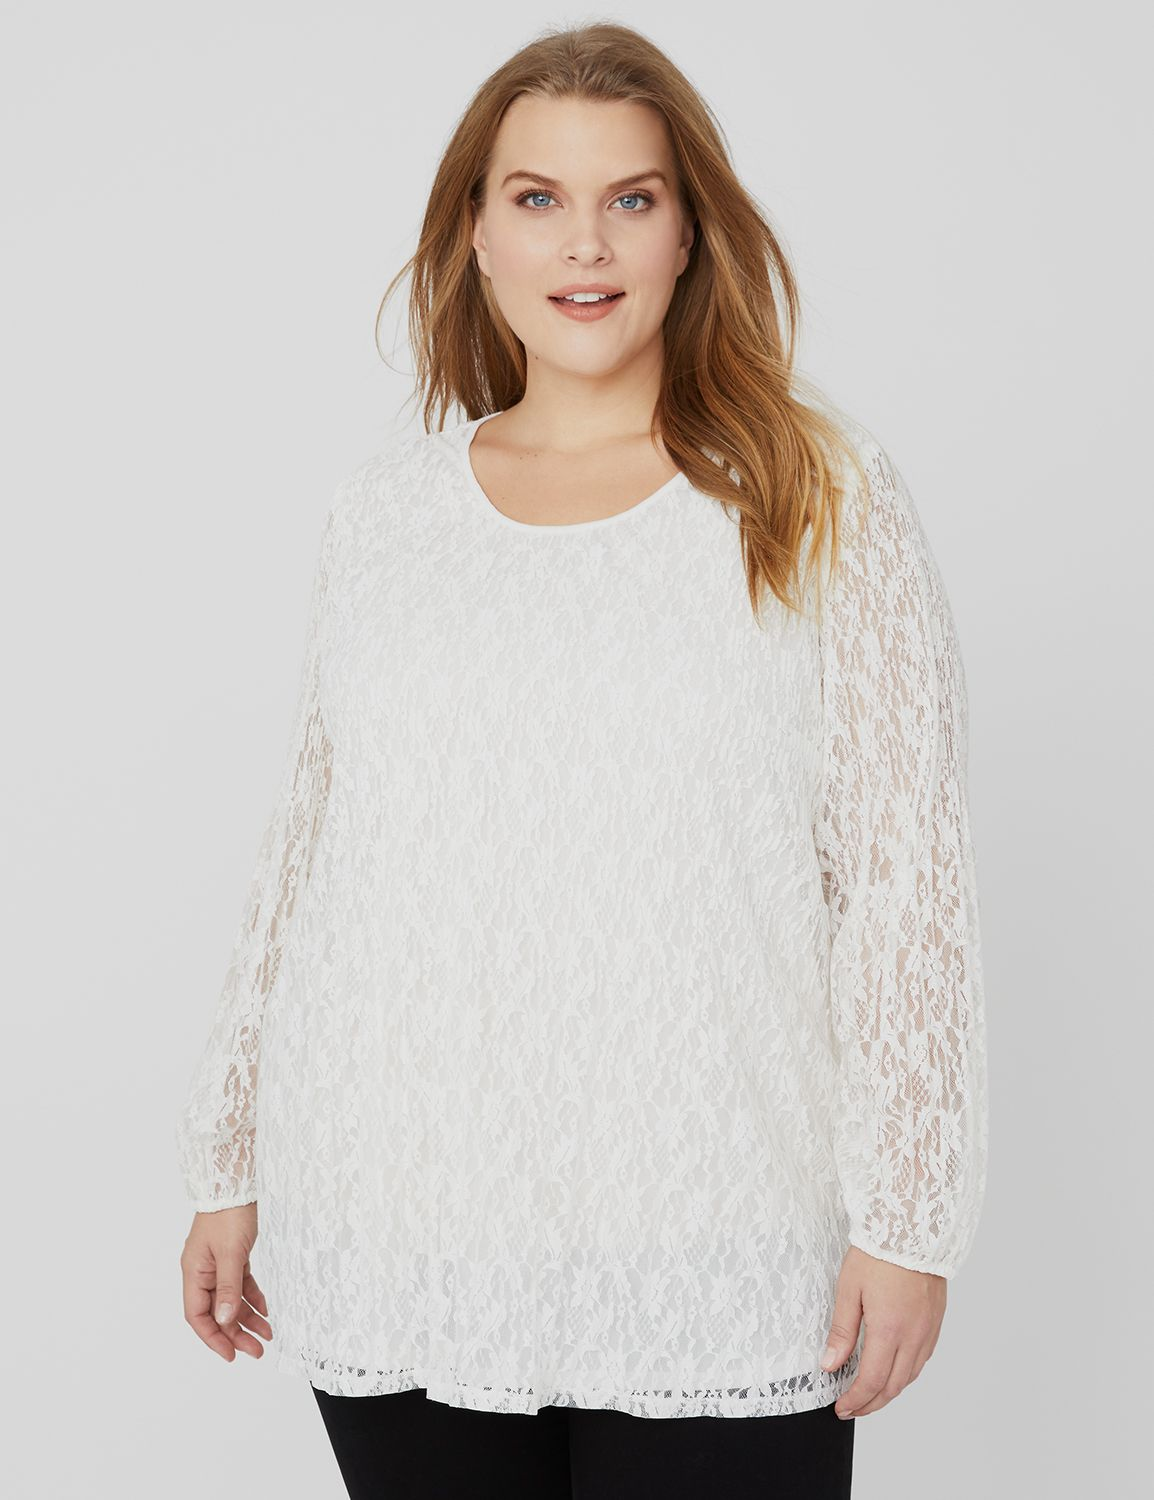 Pleated Lace Top Lace Cold Shoulder Pleater MP-300088765